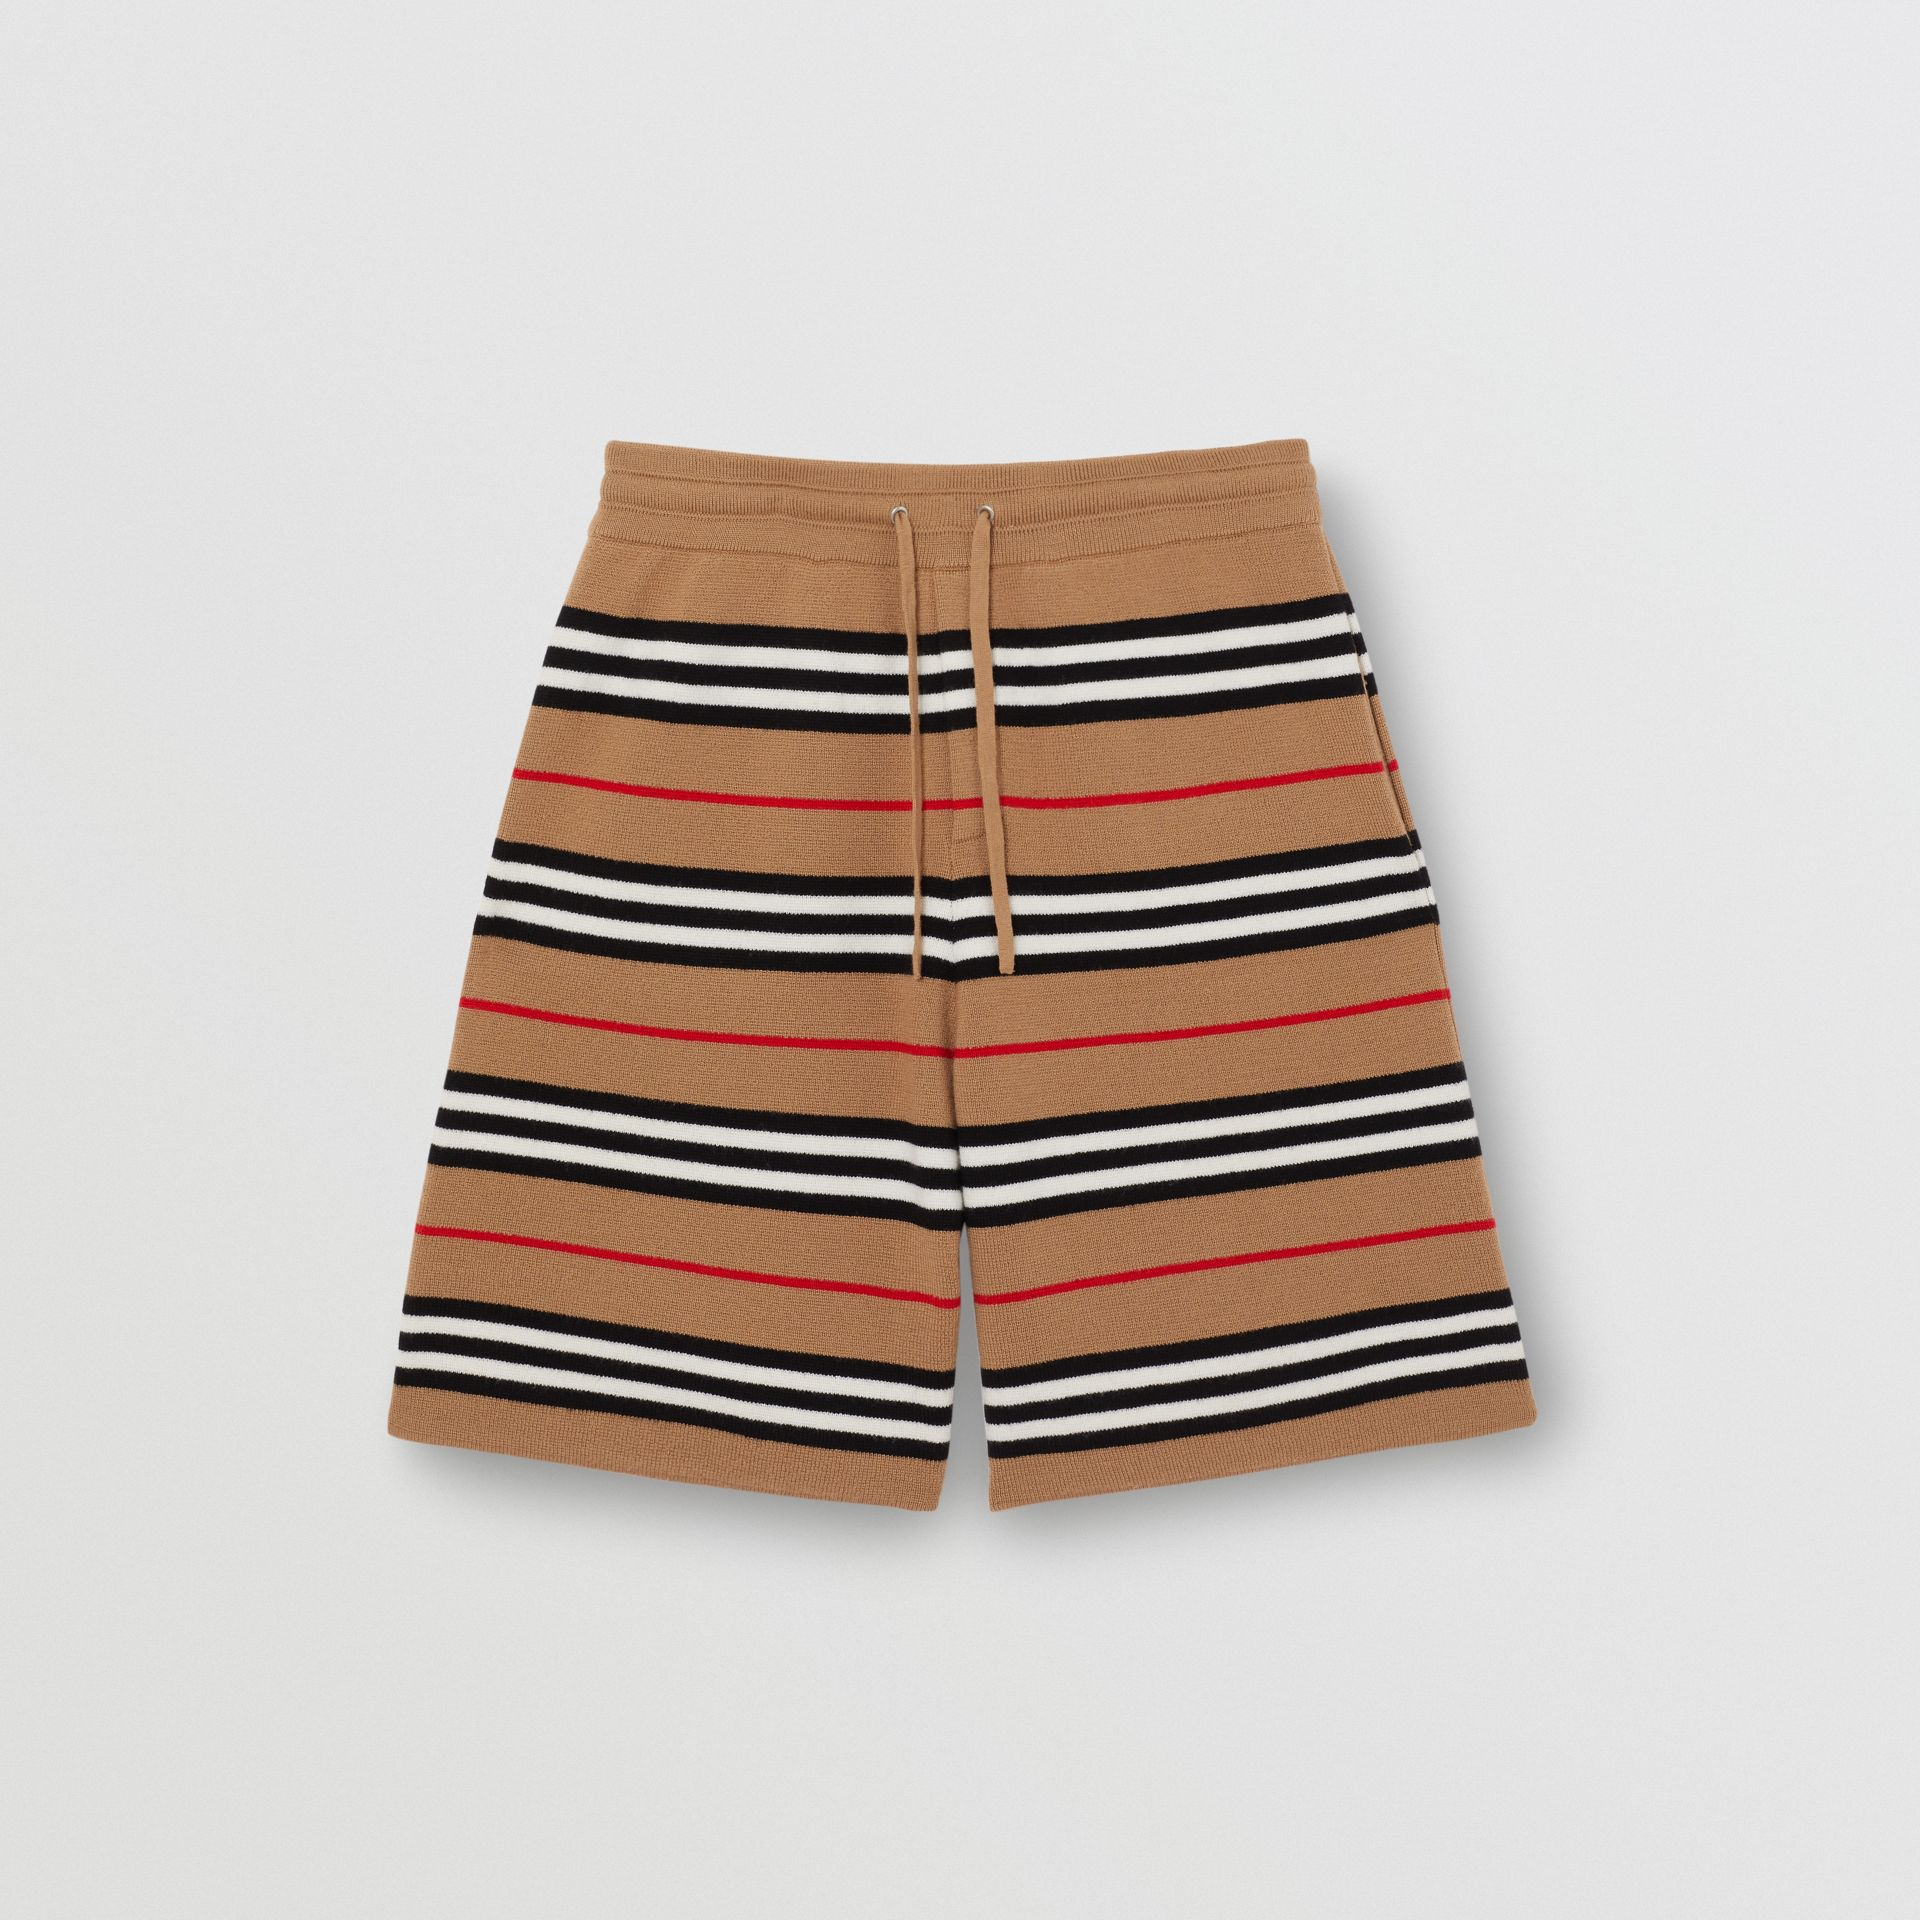 Monogram Motif Merino Wool Drawcord Shorts in Archive Beige - Men | Burberry - gallery image 1